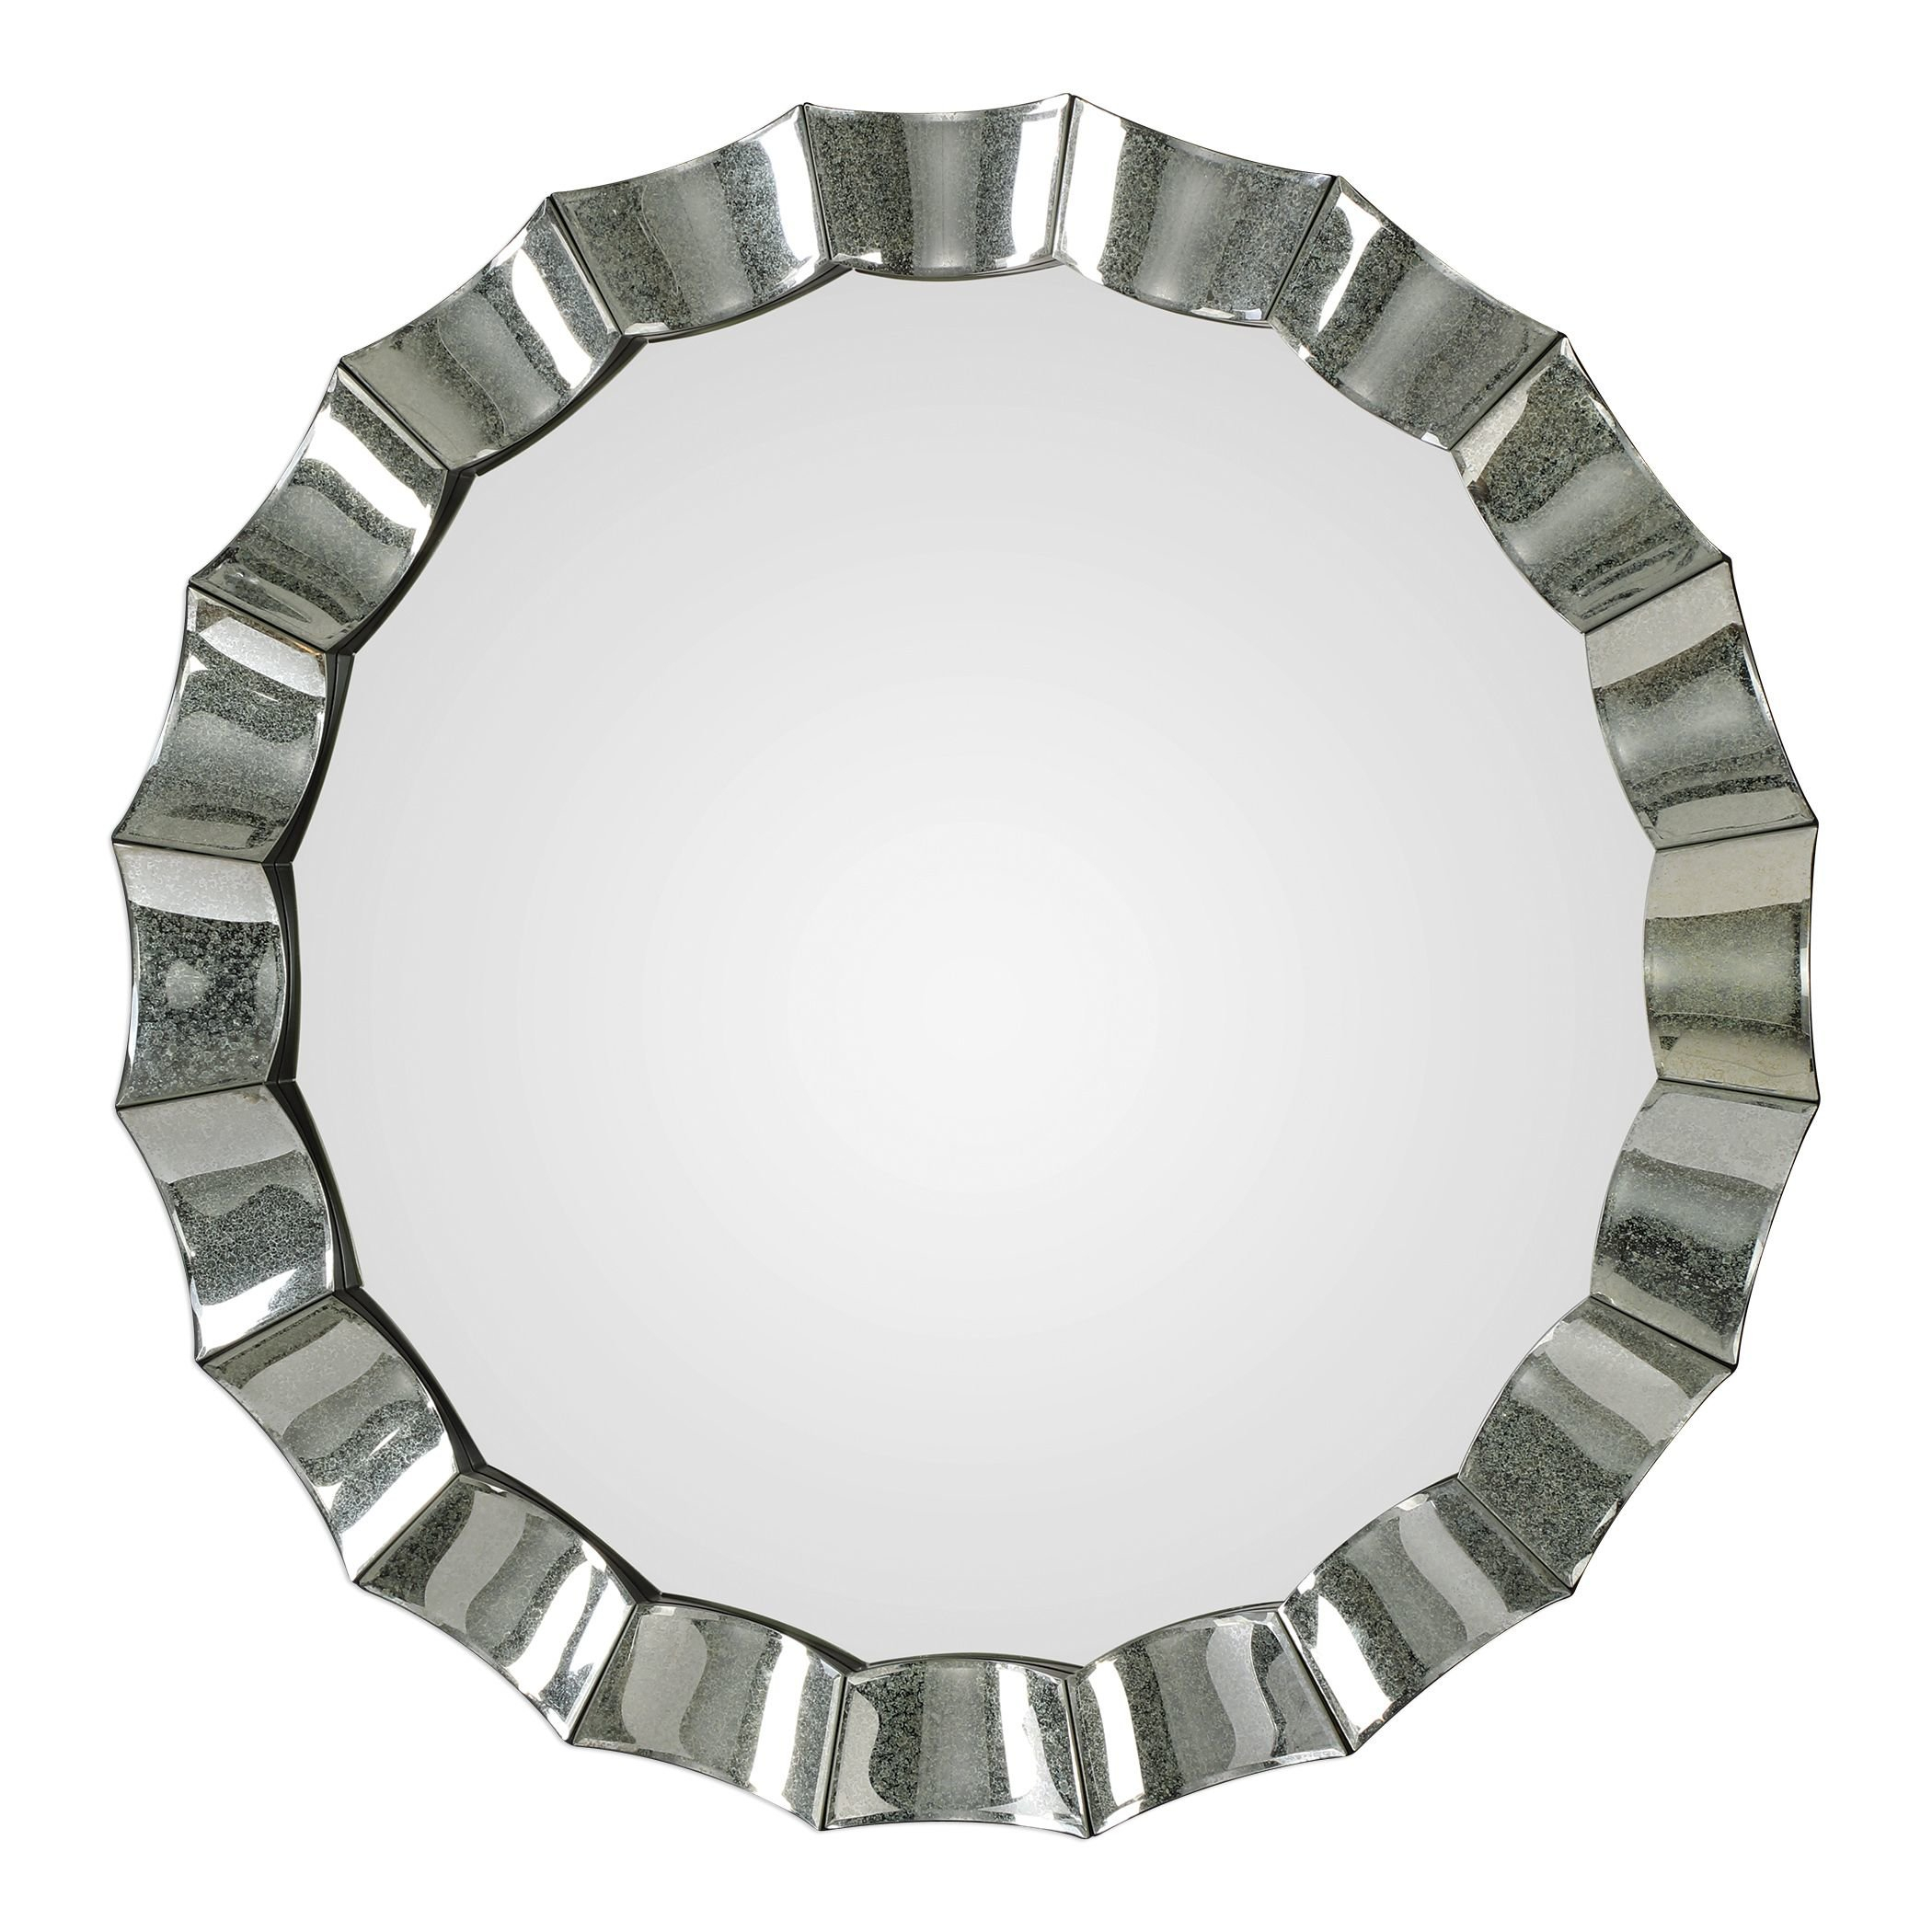 Scalloped Mirror | Wayfair With Dariel Tall Arched Scalloped Wall Mirrors (Image 17 of 20)